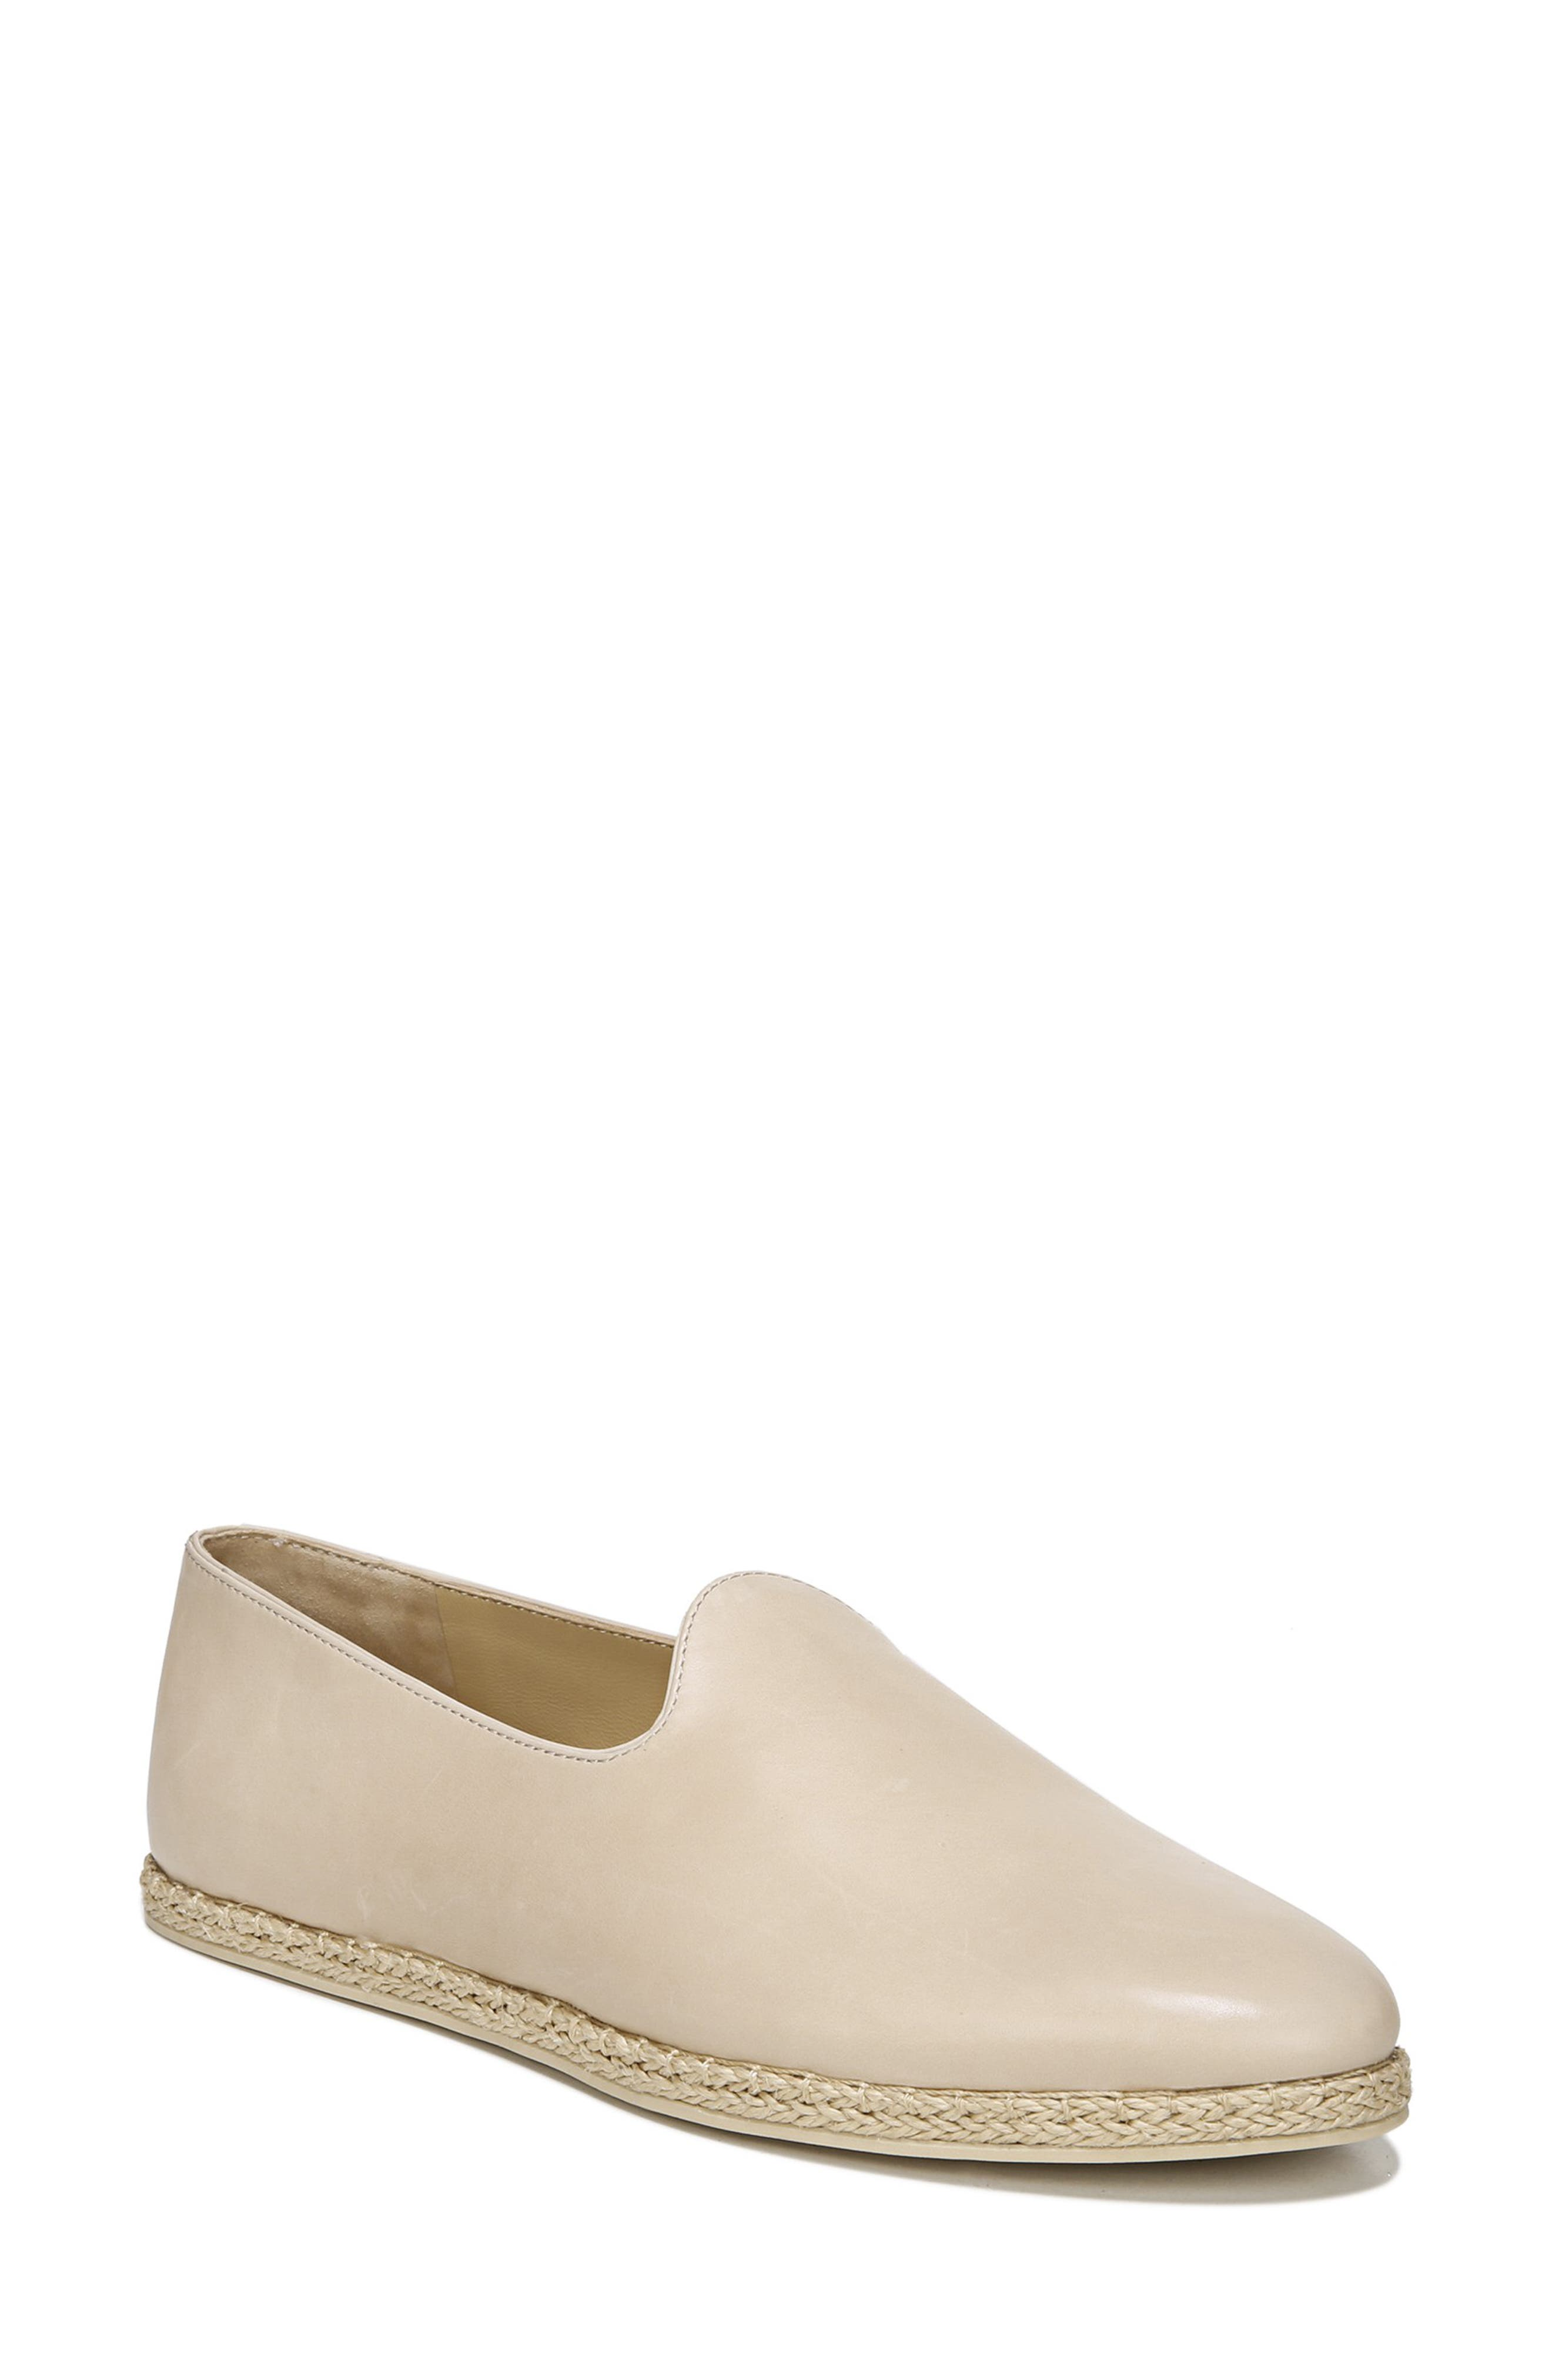 VINCE, Malia Loafer Flat, Main thumbnail 1, color, SAND EMBER LEATHER